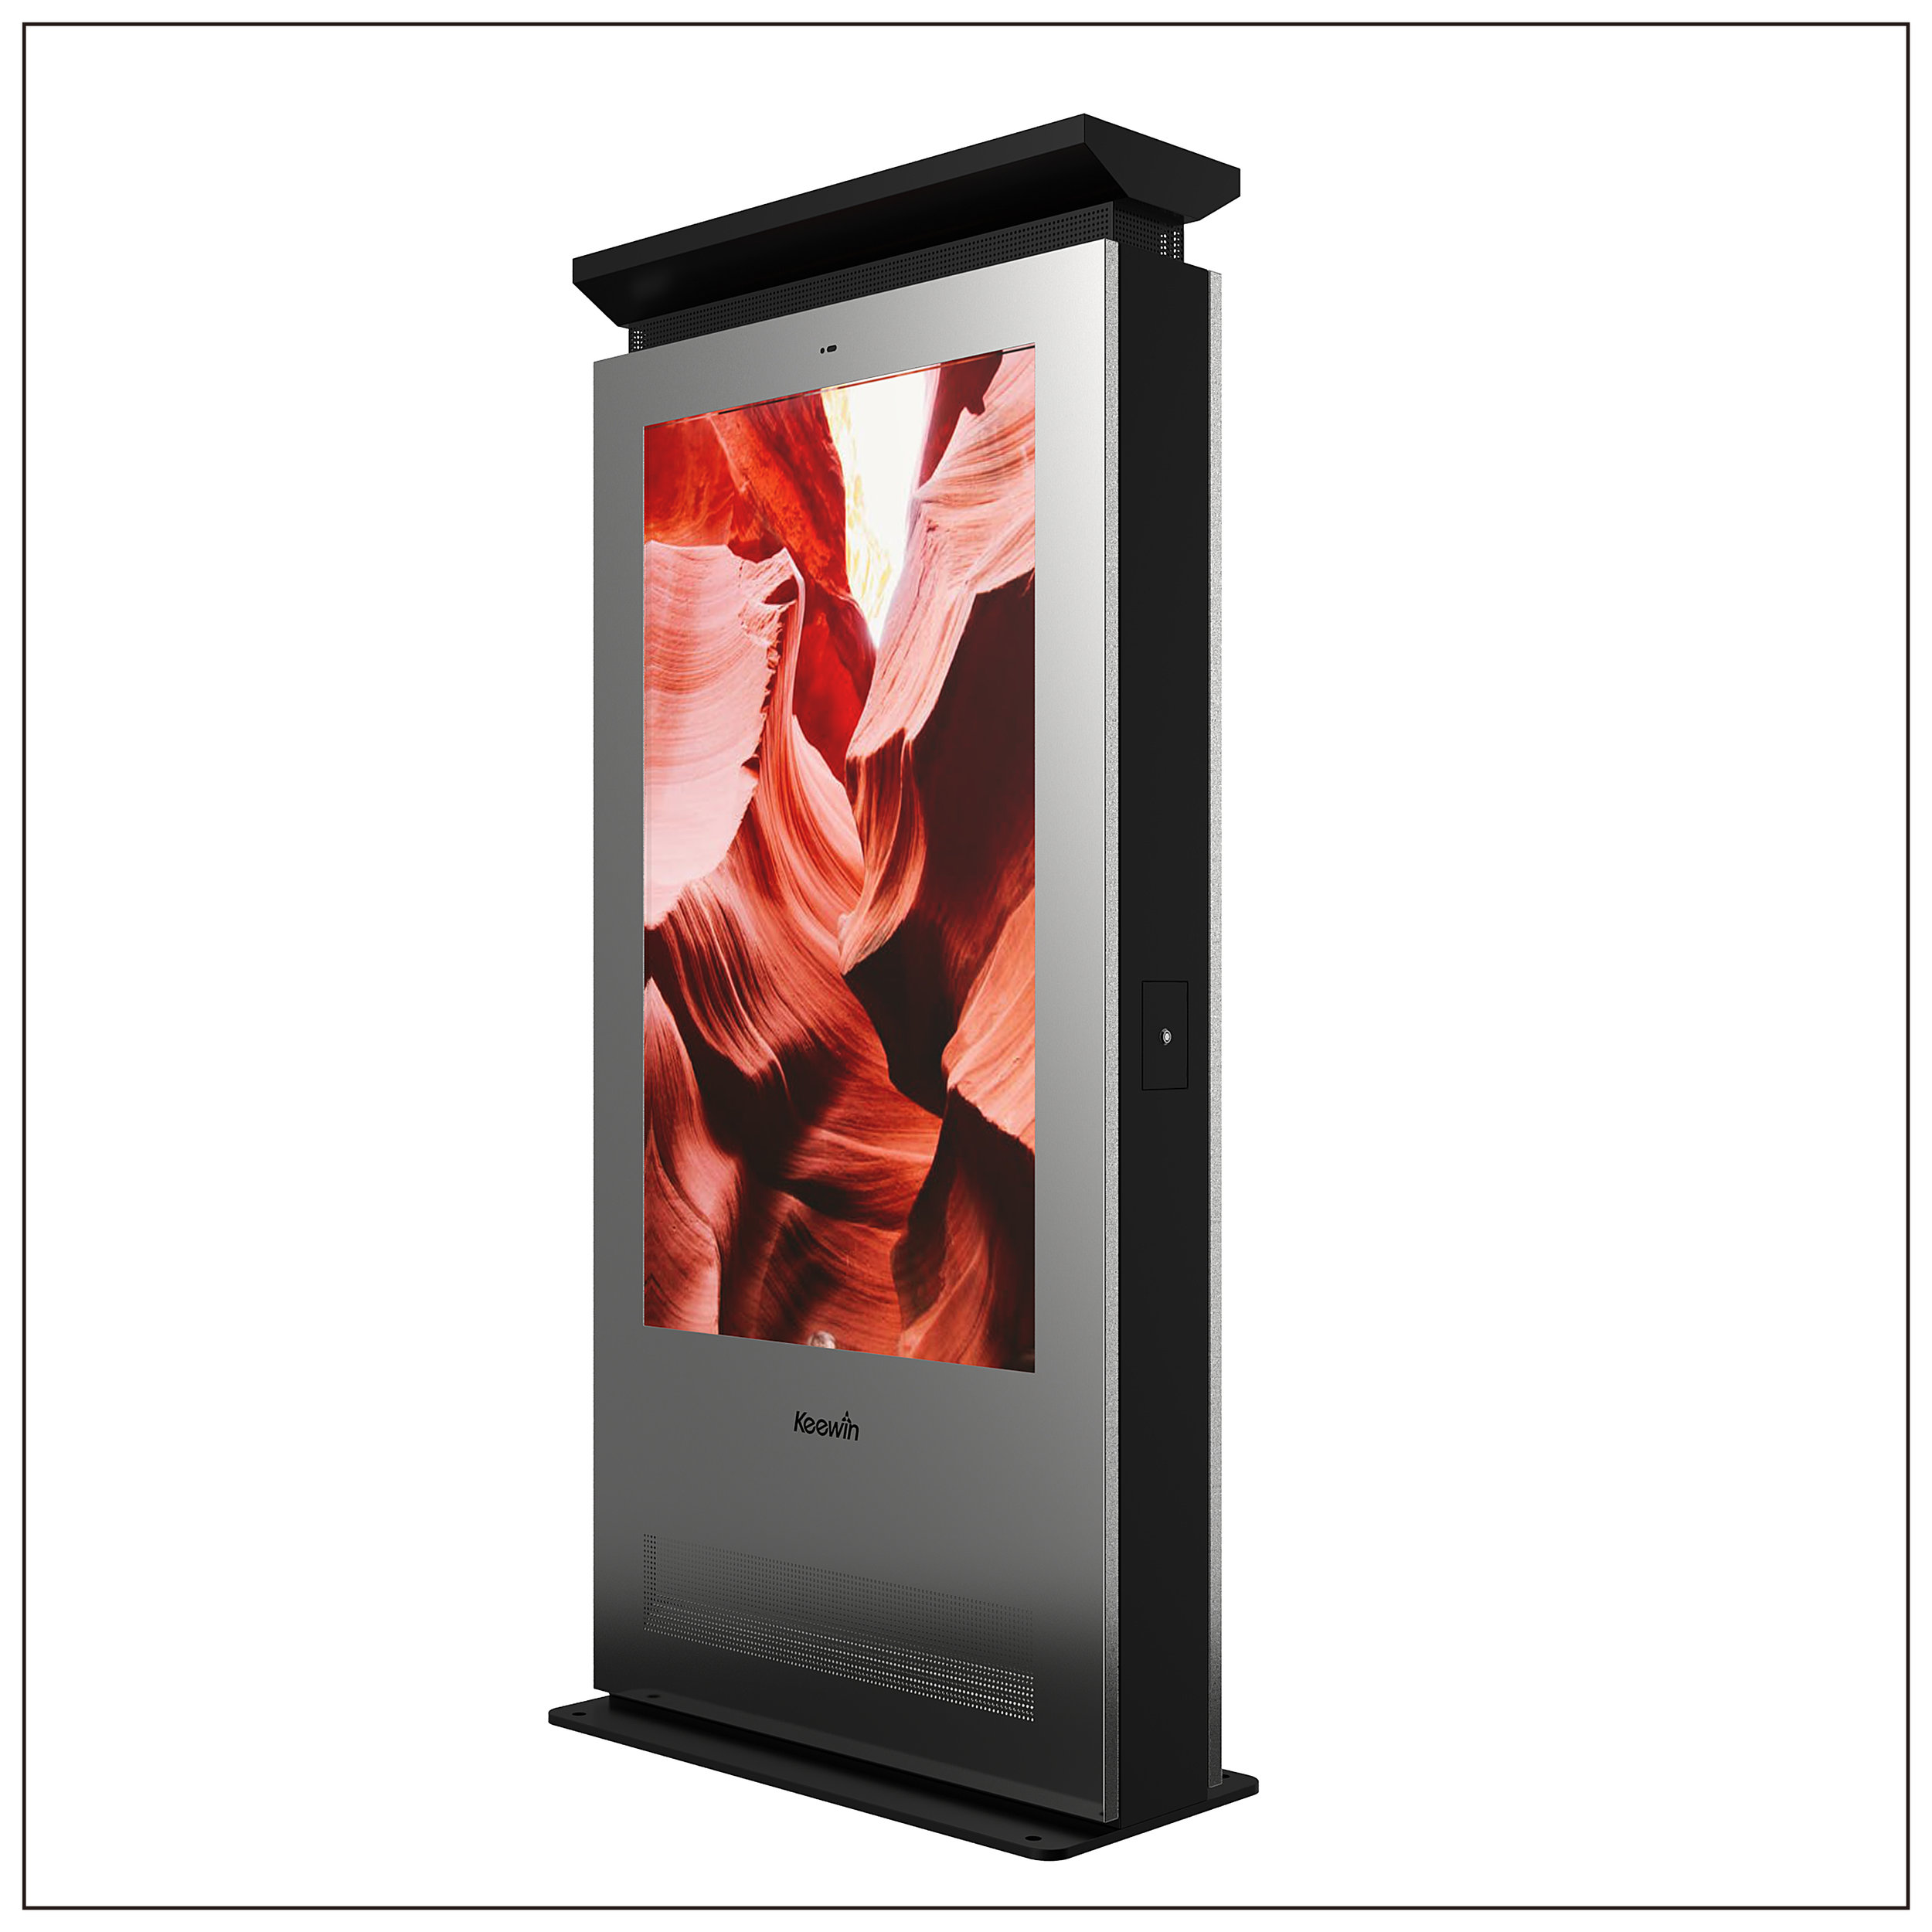 Outdoor High Brightness Double Side LCD Displays - Panel Size: 86 inchBrightness : 3000 nitResolution: 1920 × 1080